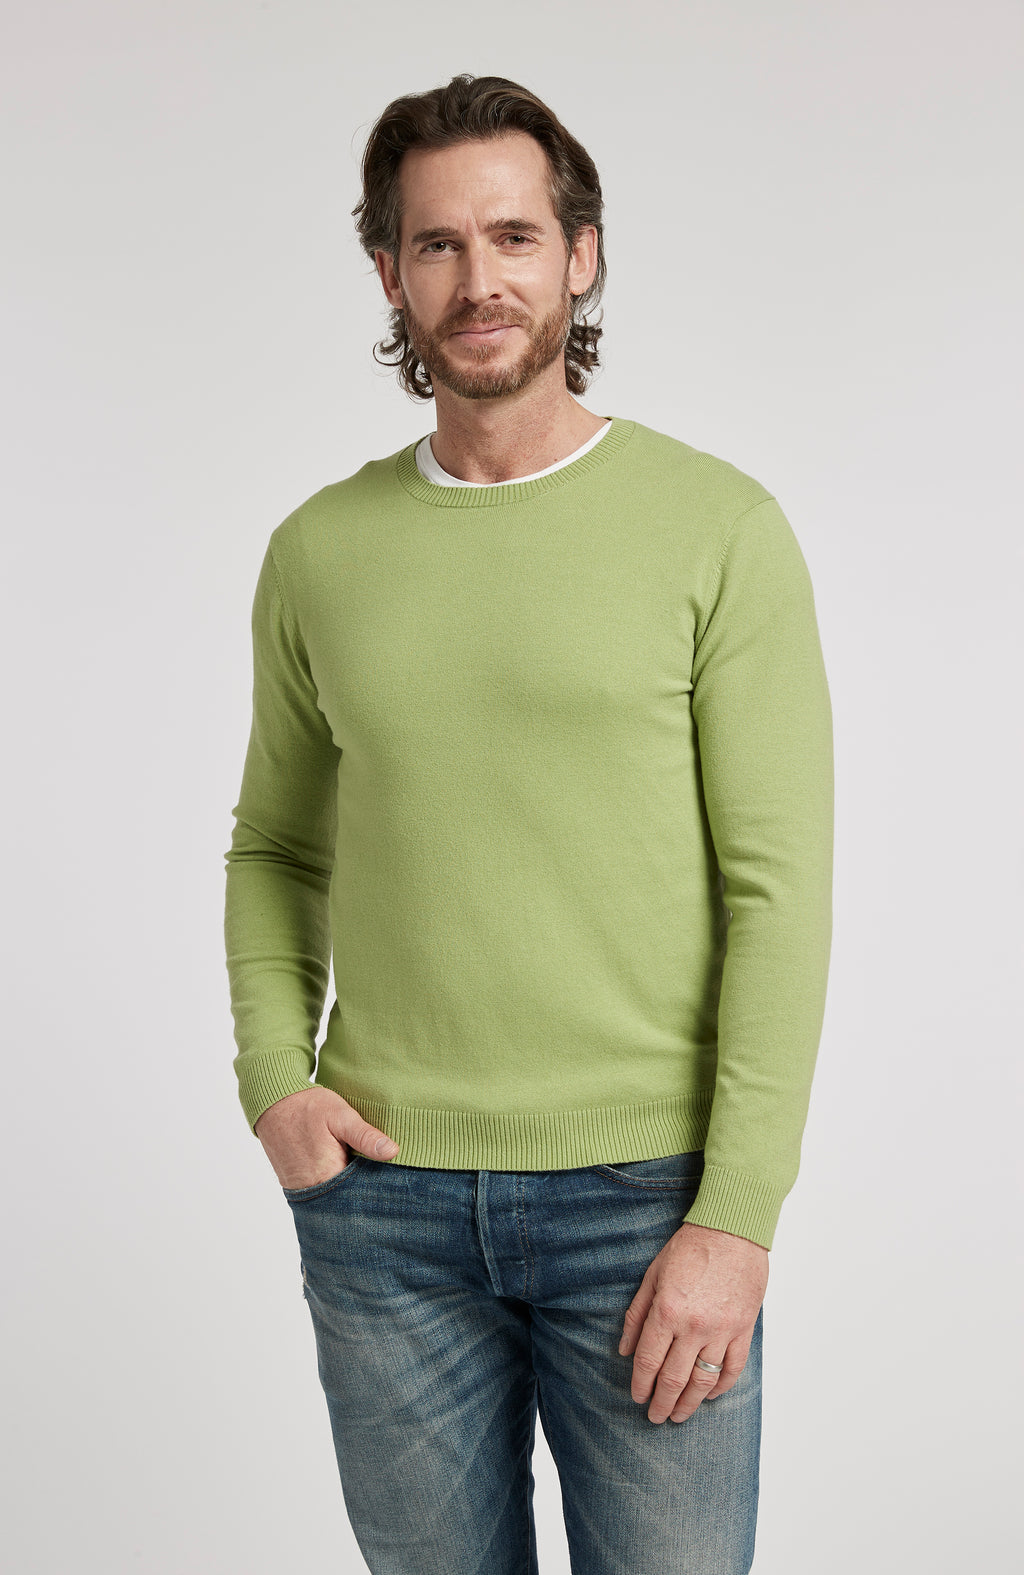 PIMA COTTON LONG SLEEVE CREWNECK SWEATER - LIME GREEN